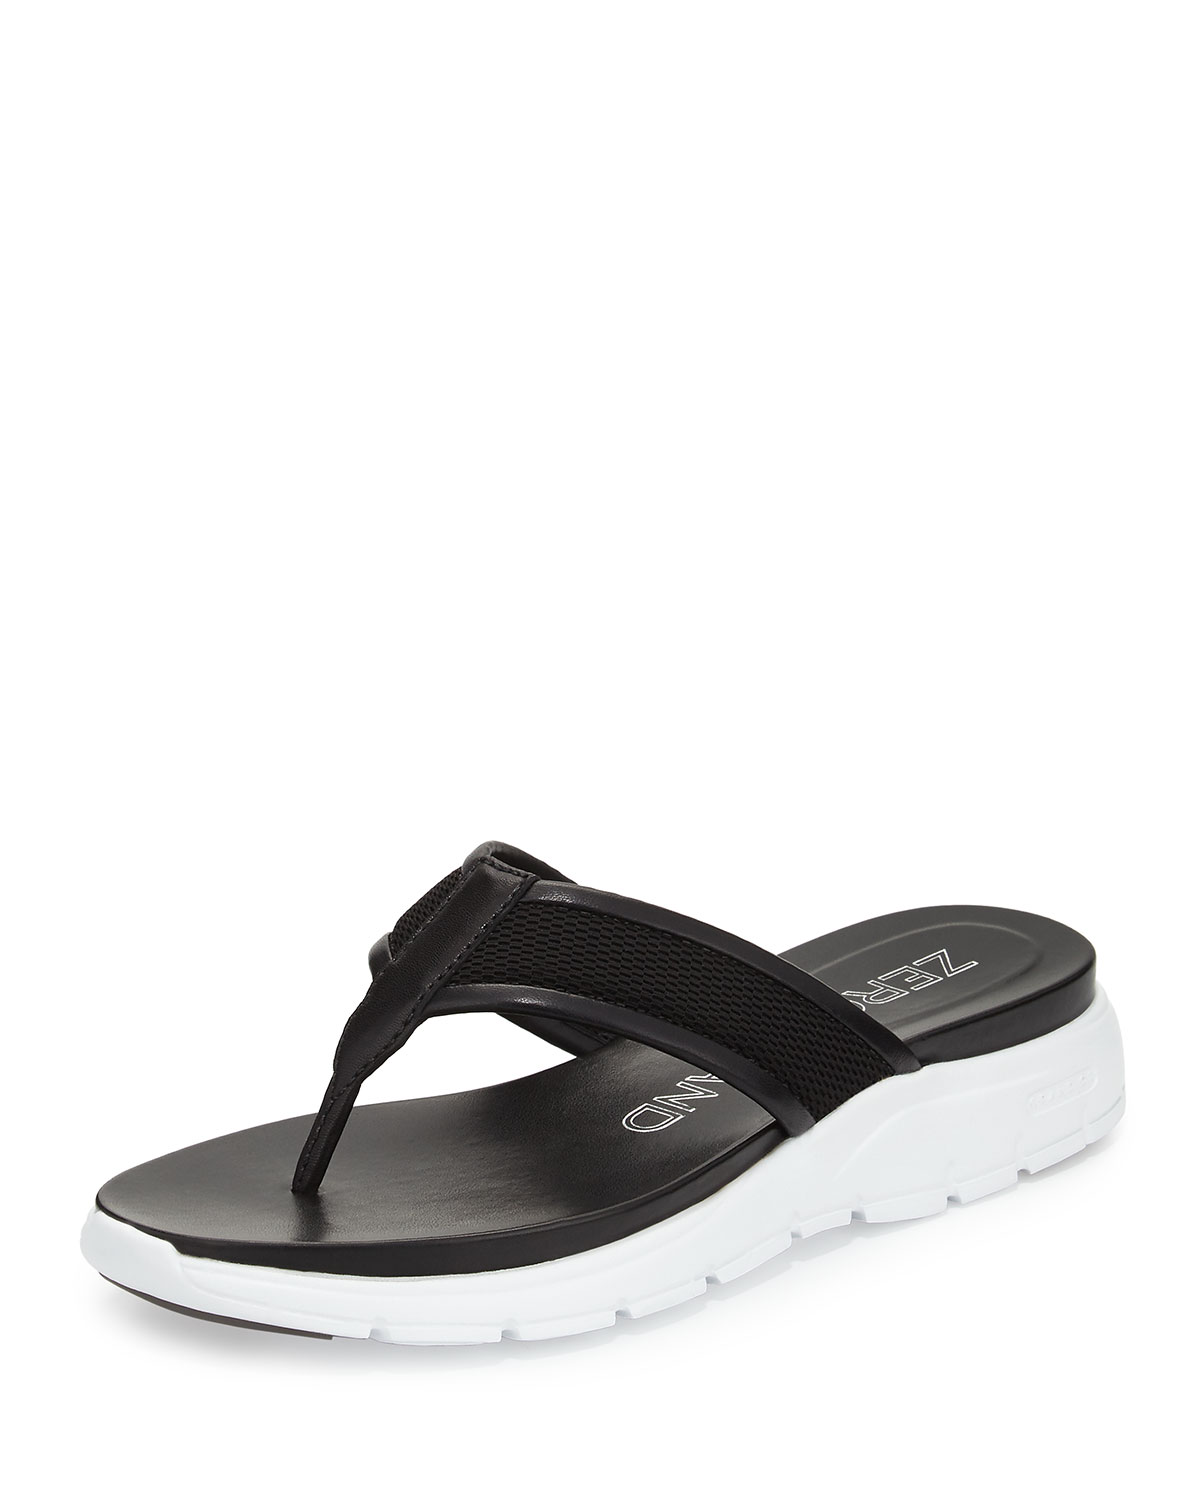 7be39dc9cabc Cole Haan ZeroGrand™ Mesh Thong Sandals